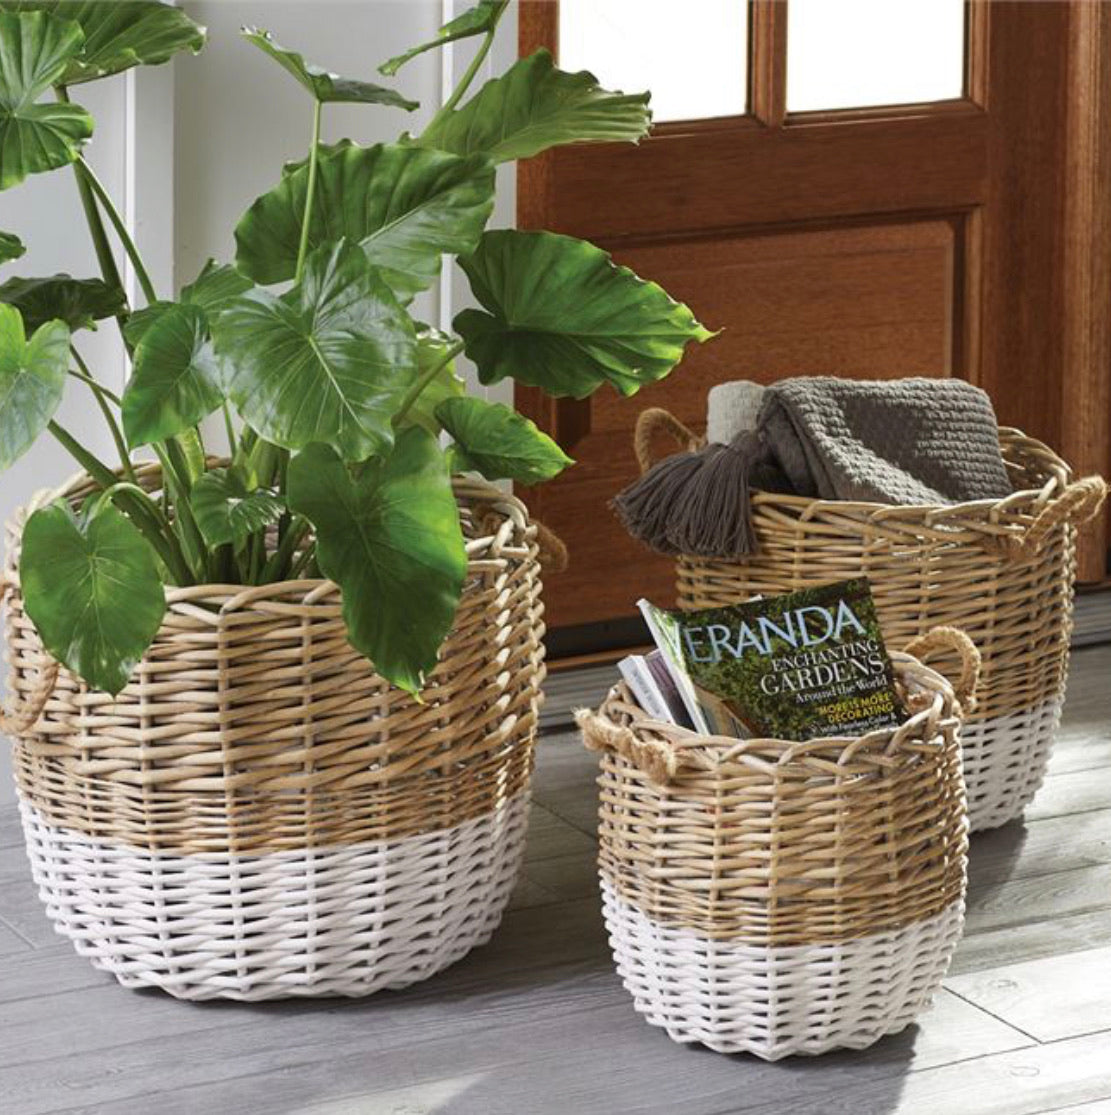 Dual Toned Wicker Baskets